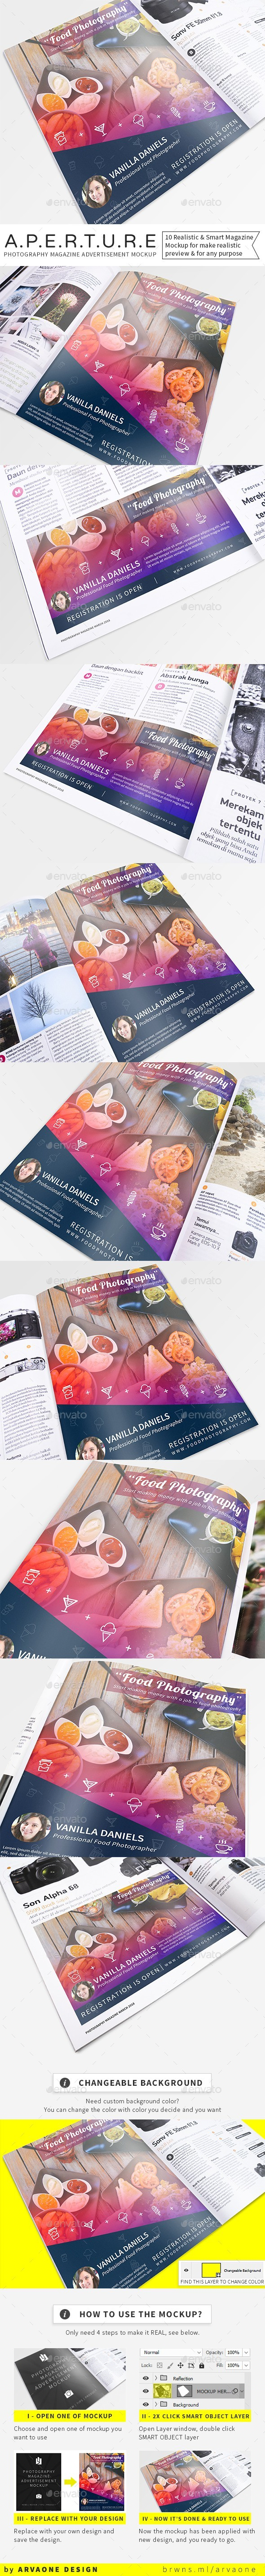 Aperture - Photography Magazine Advertisement Mockup - Magazines Print